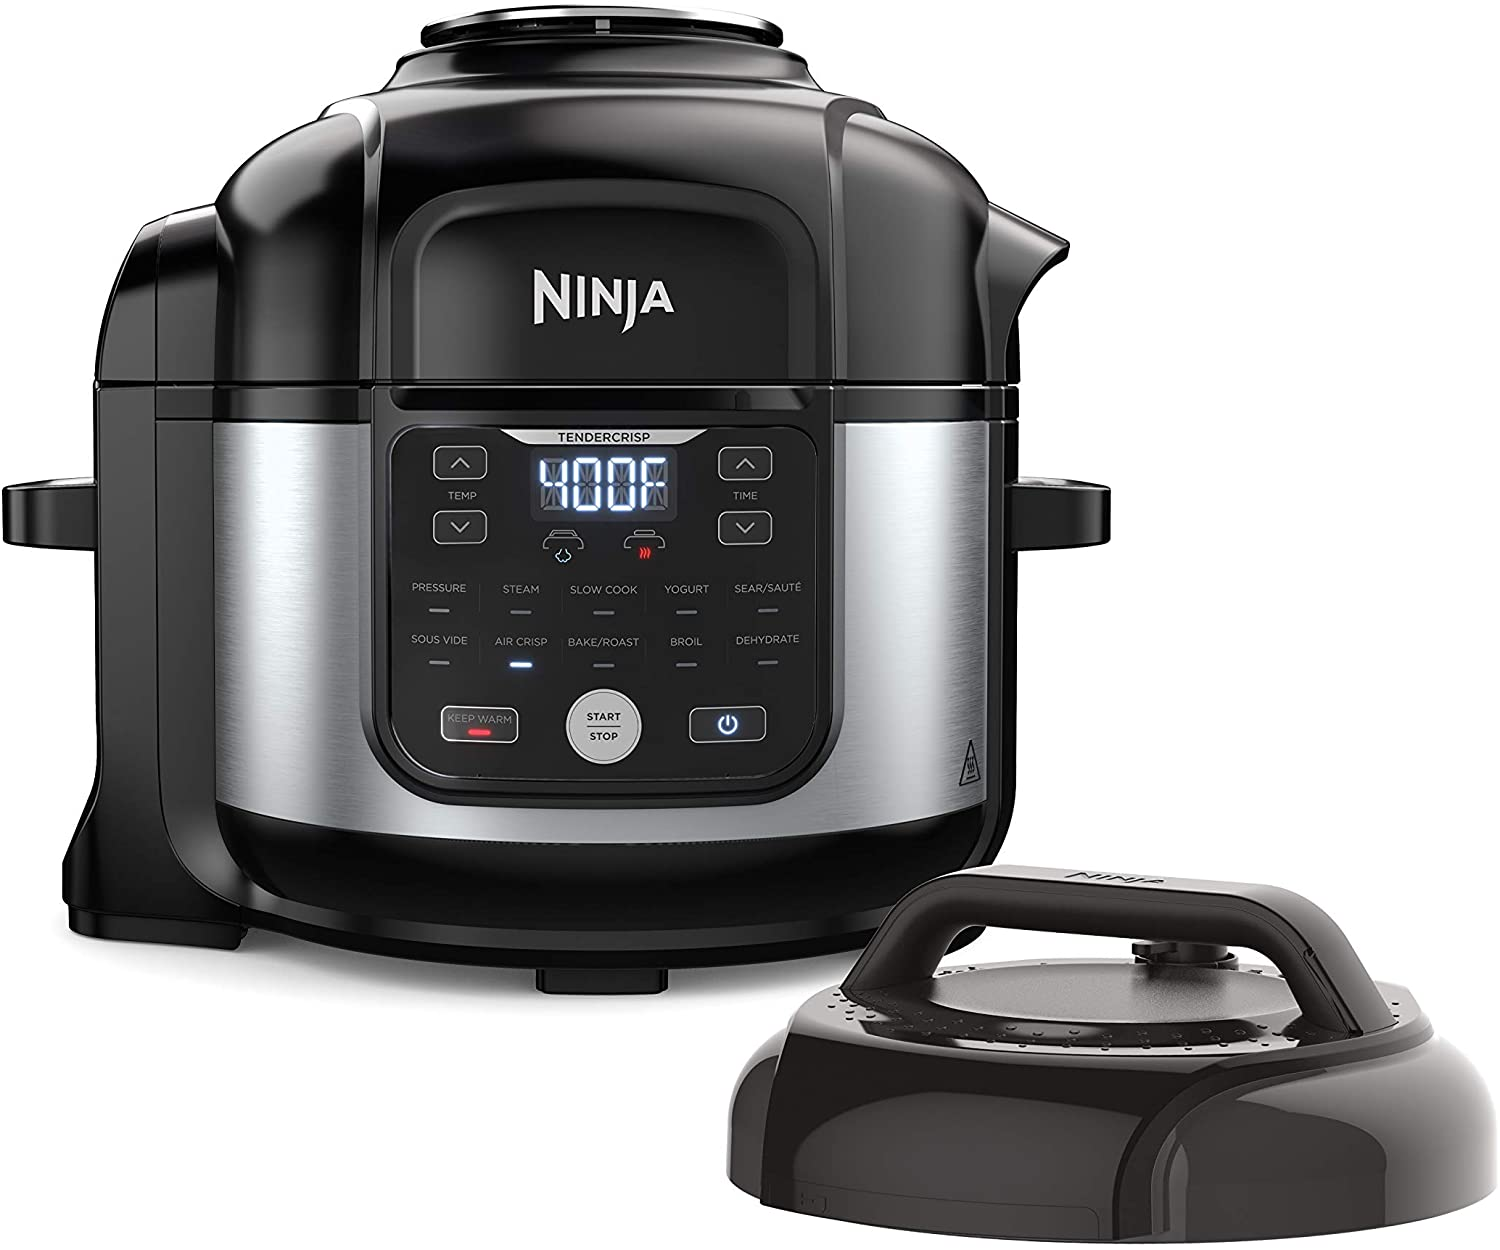 Ninja Foodi (FD302) 11-in-1 6.5-qt Pro Pressure Cooker plus Air Fryer with Stainless finish